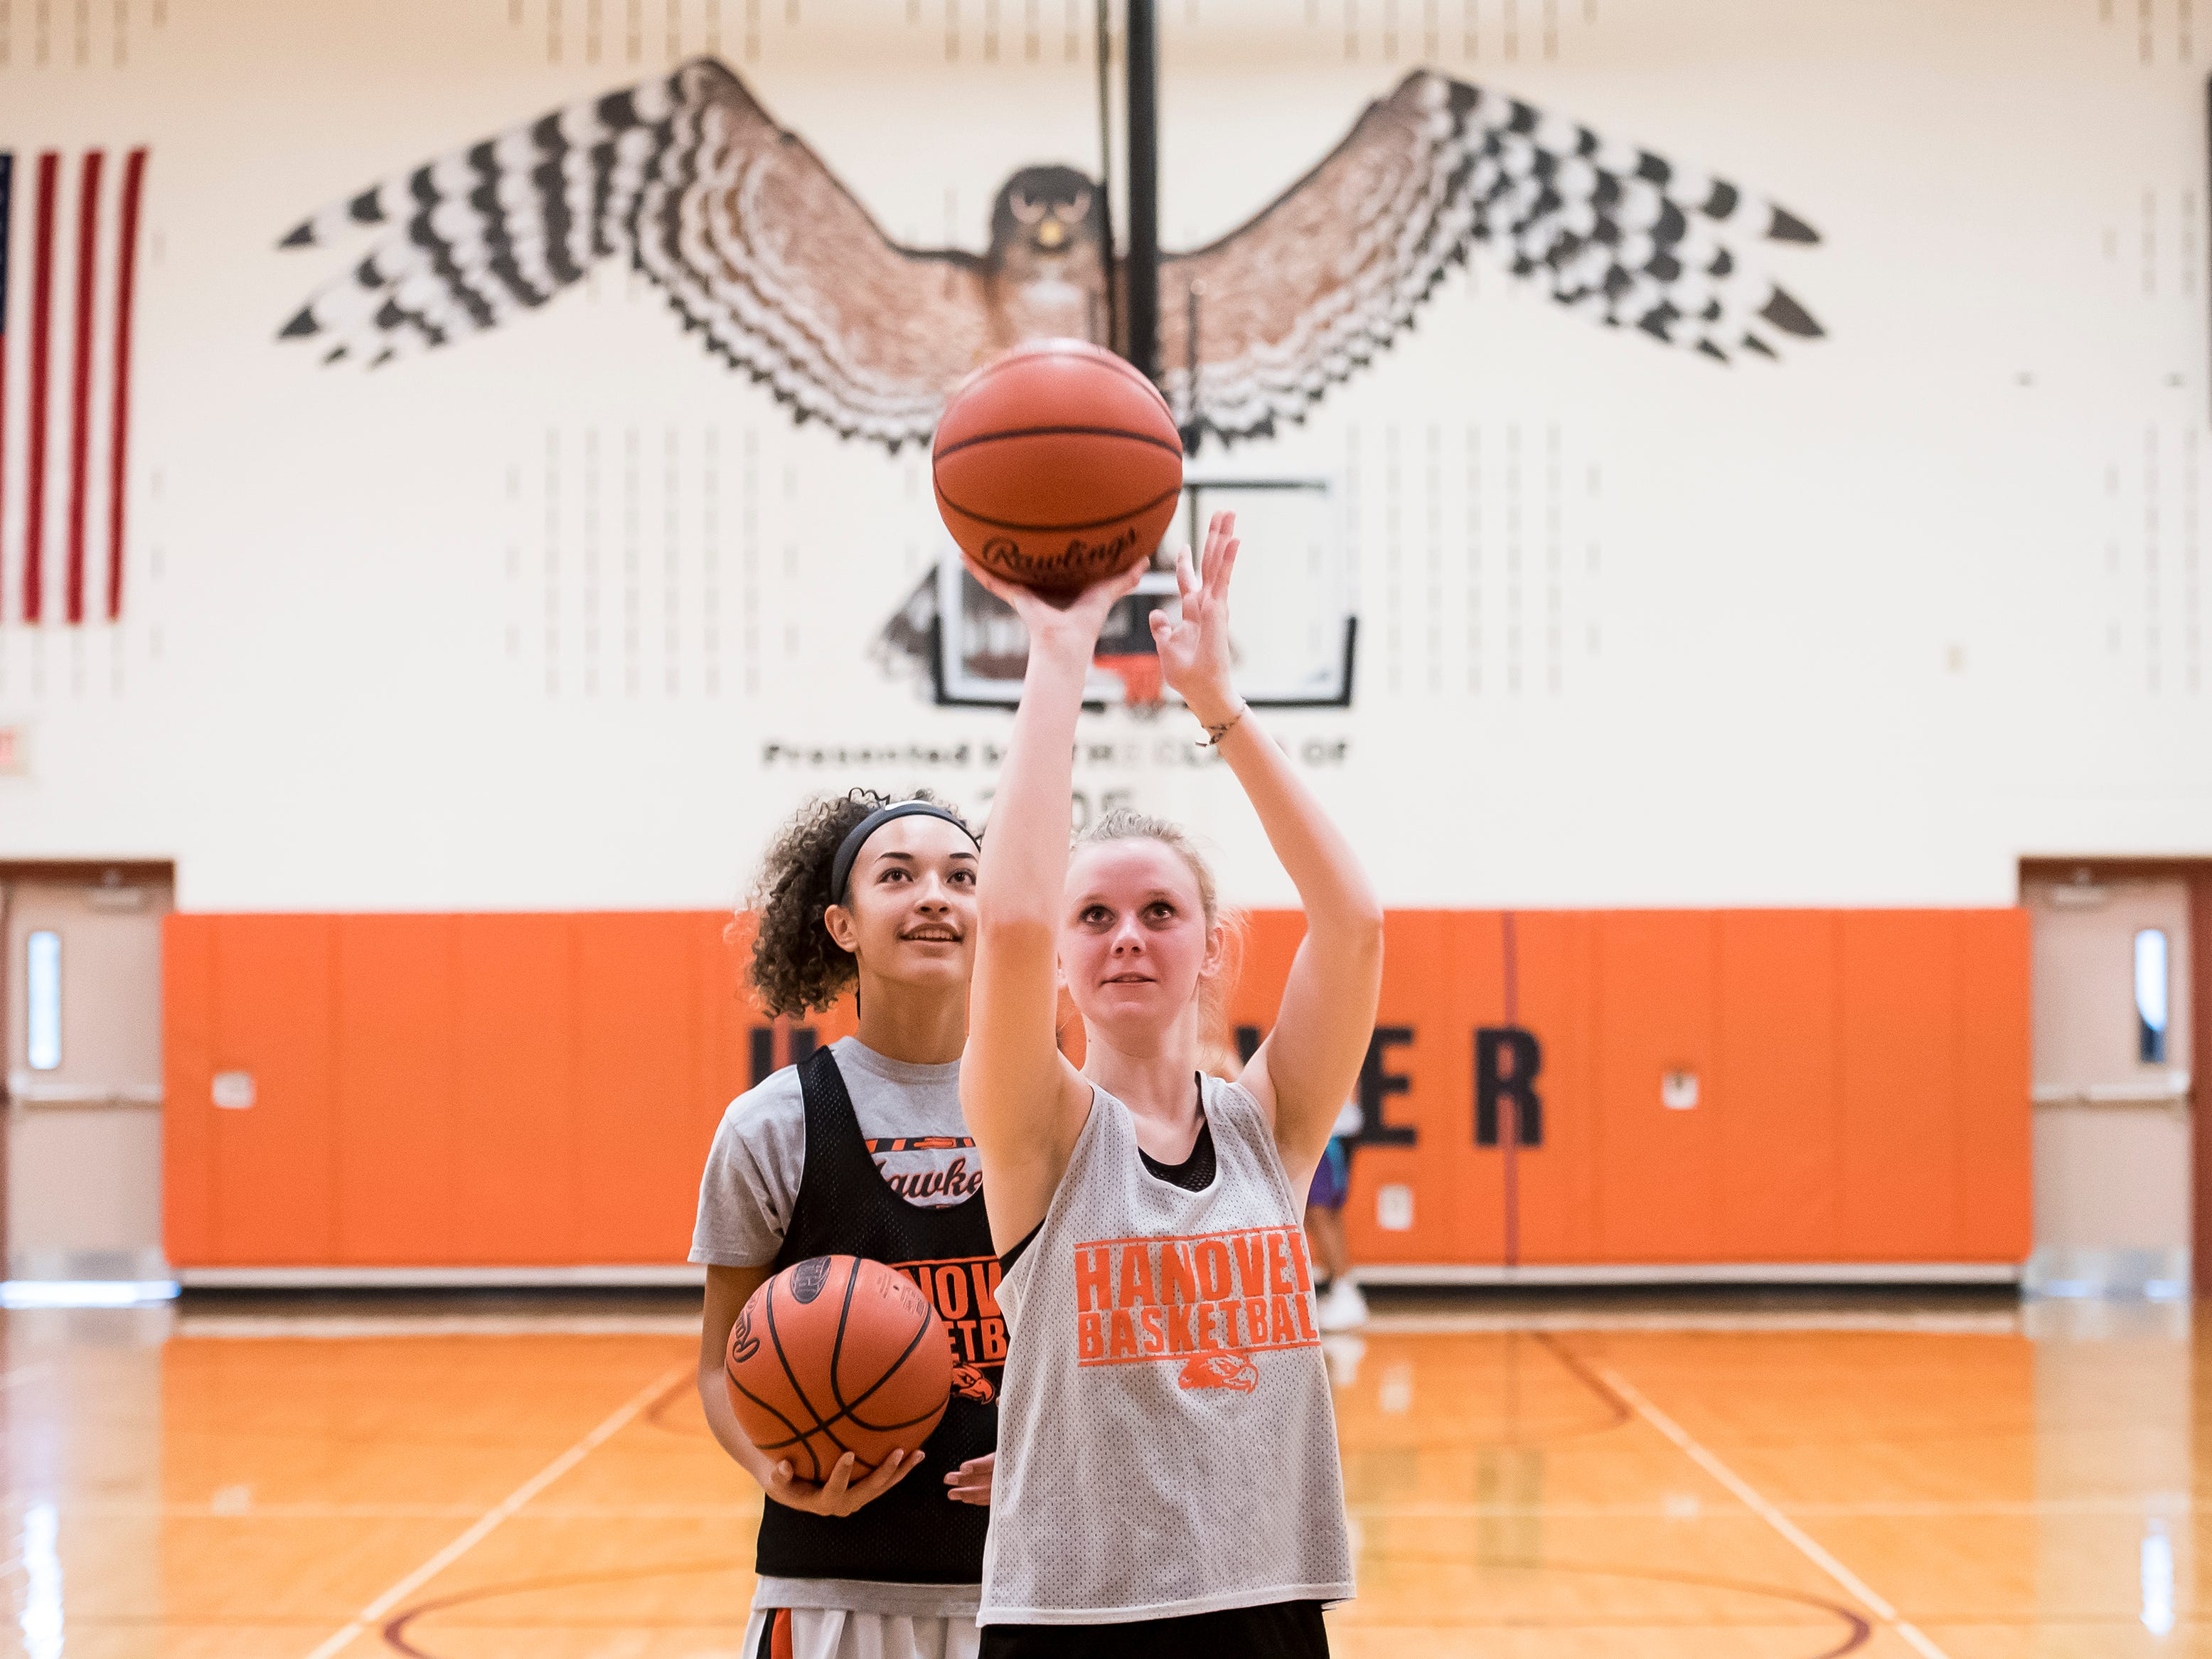 Hanover High School basketball players Abby Alban, right, and Tianna Grey practice their free throws during the first official day of winter sports practice on Friday, November 16, 2018.